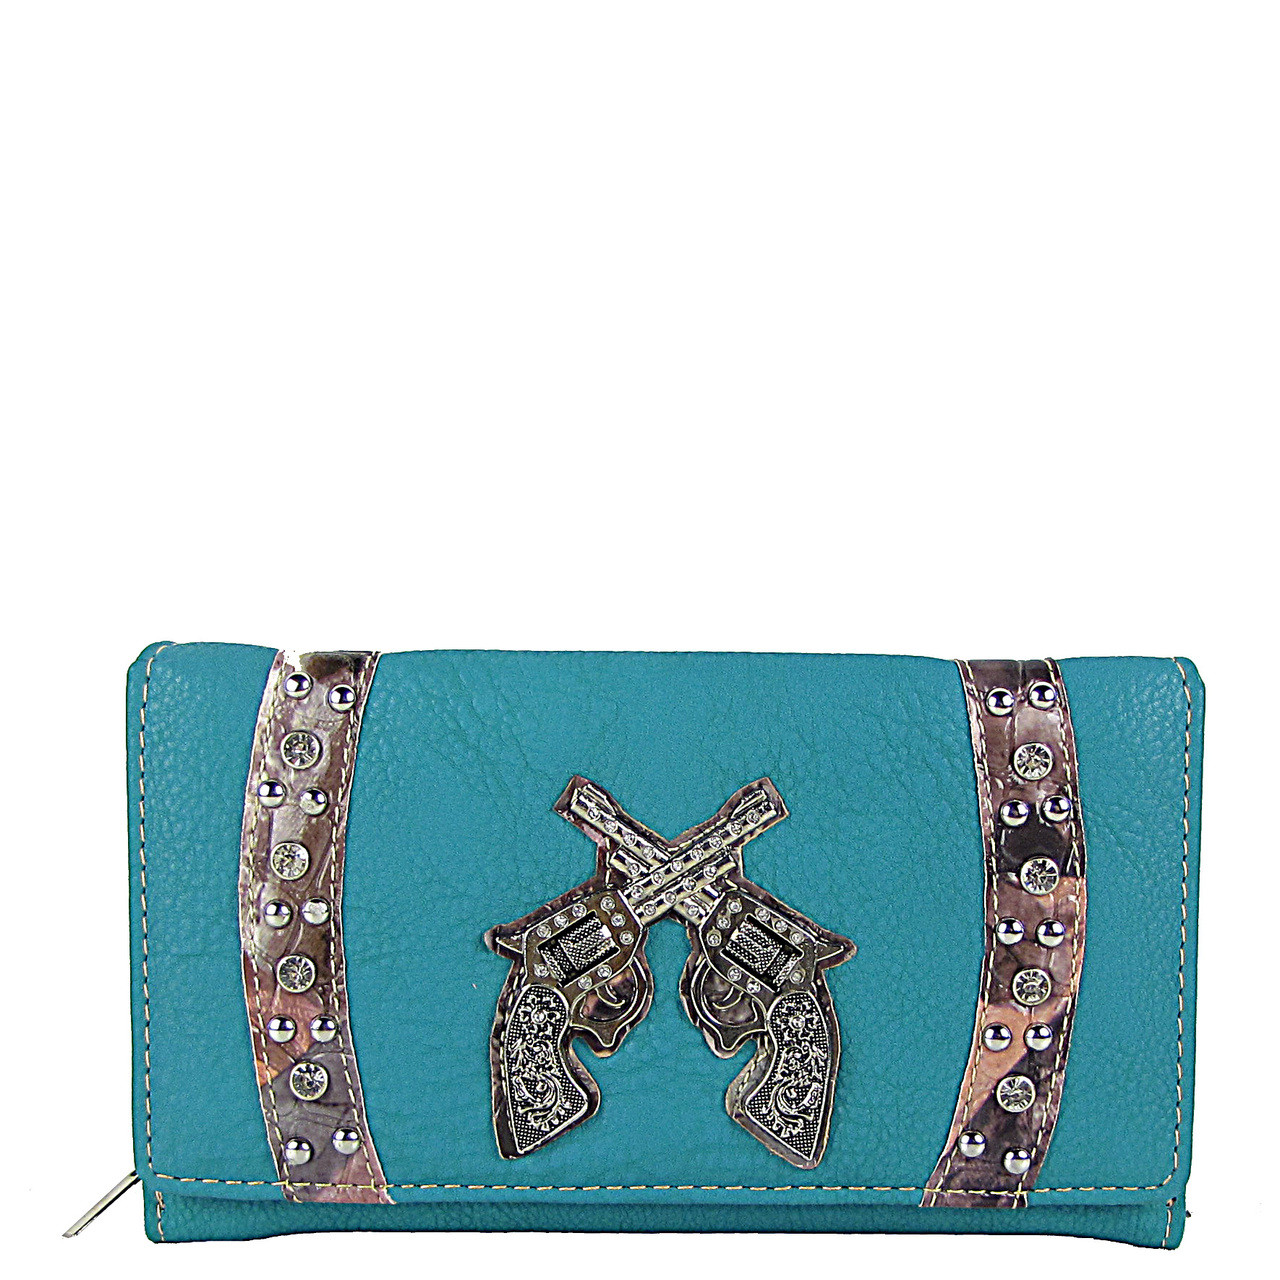 TURQUOISE CAMO RHINESTONE STUDDED PISTOL LOOK CHEKCBOOK WALLET CB1-1280TRQ